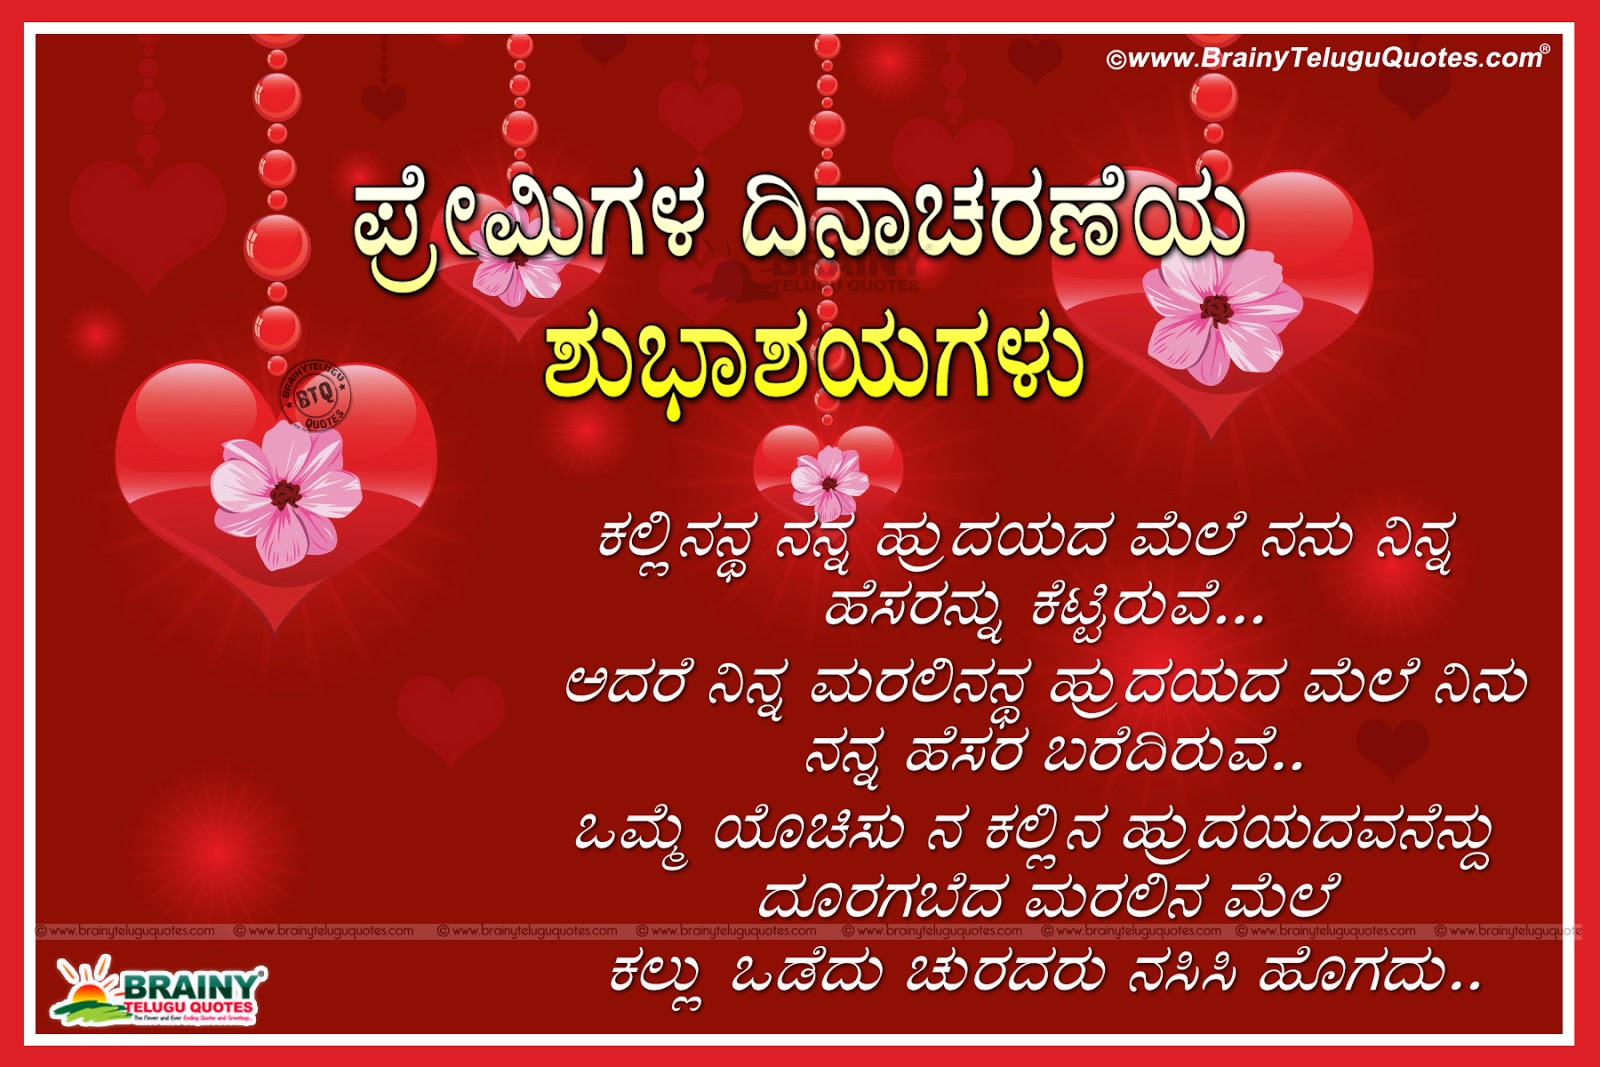 Famous Kannada Language Valentines Day Wishes Quotes 1600x1067 Download Hd Wallpaper Wallpapertip